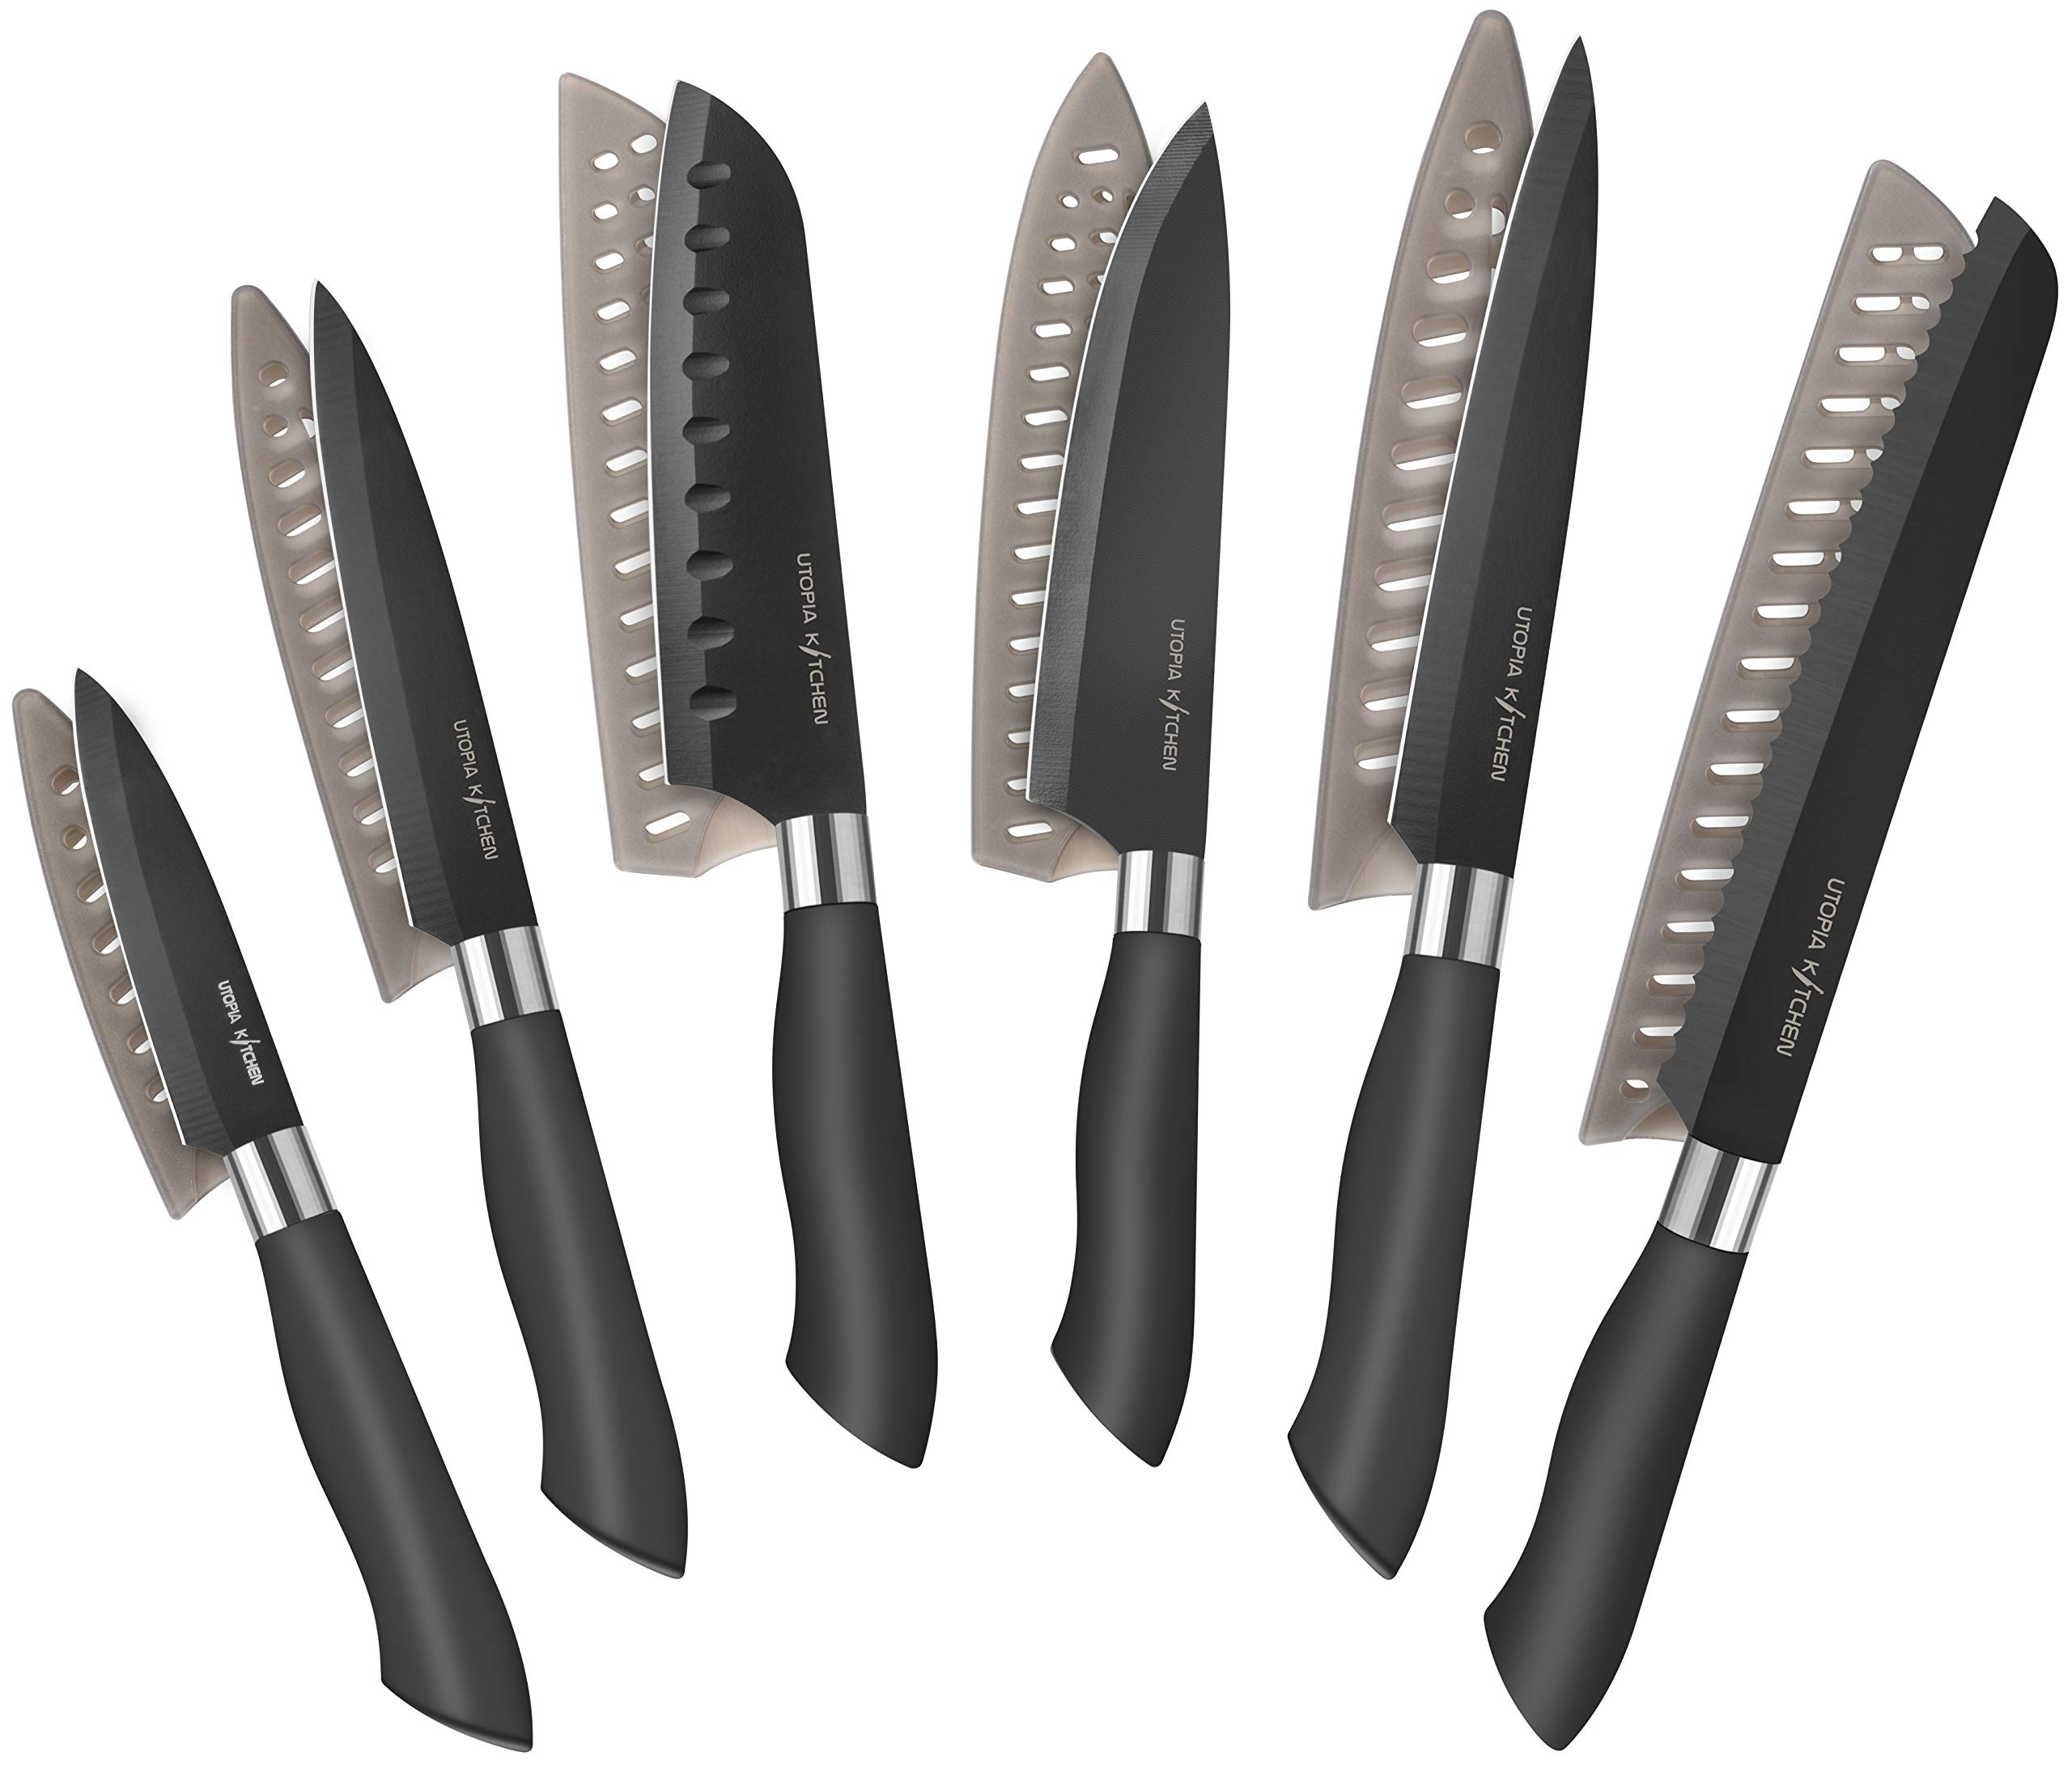 Utopia Kitchen 12-Piece Black Colored Knife Set with Black Colored Blades – Rust Resistant Stainless Steel Material with Non-Stick Coating - PP Rubberized Handle - Multipurpose Knife Set